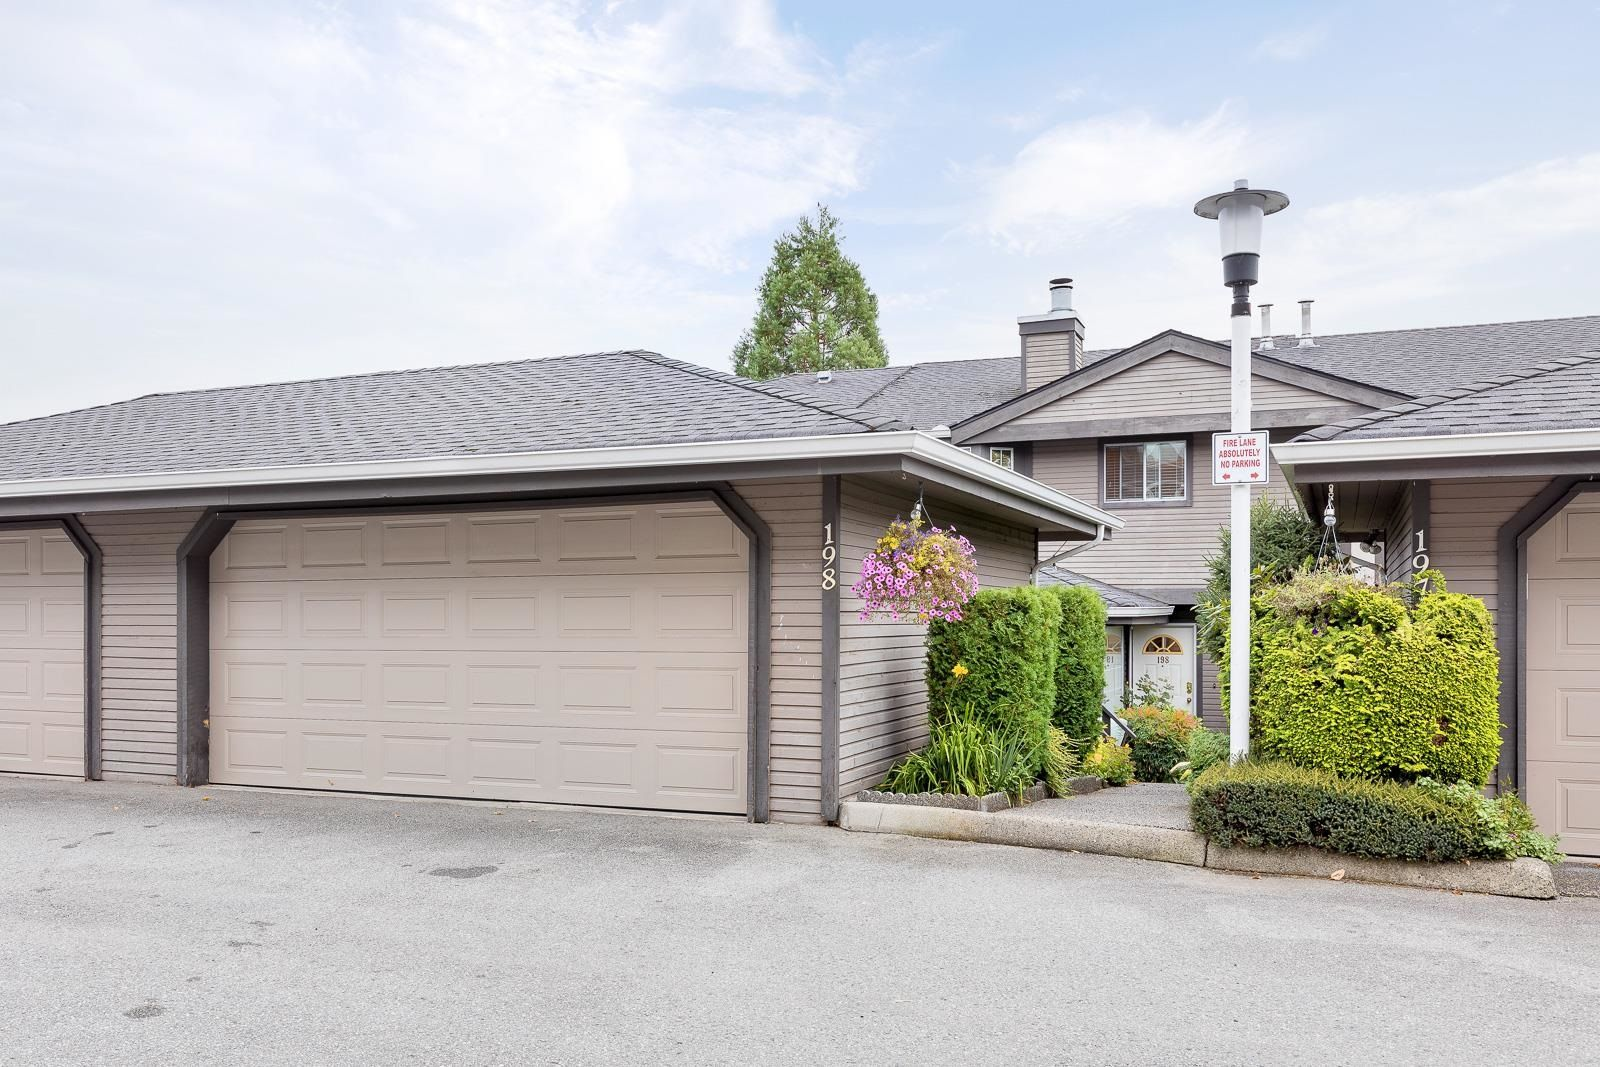 """Main Photo: 198 1140 CASTLE Crescent in Port Coquitlam: Citadel PQ Townhouse for sale in """"THE UPLANDS"""" : MLS®# R2624609"""